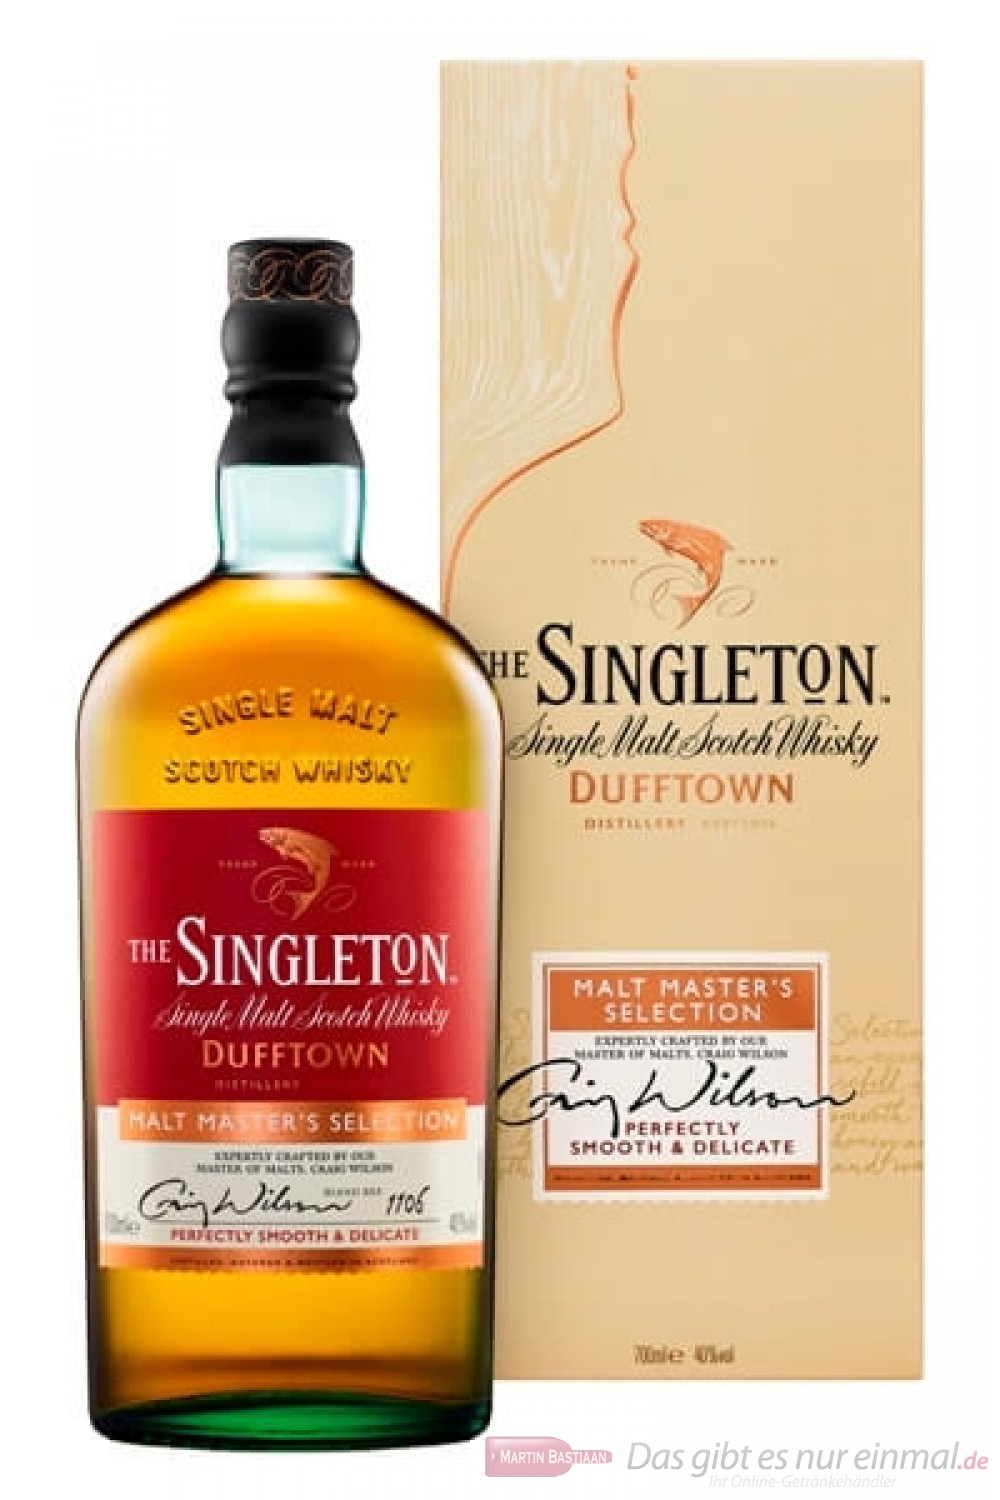 The Singleton of Dufftown Malt Master's Selection